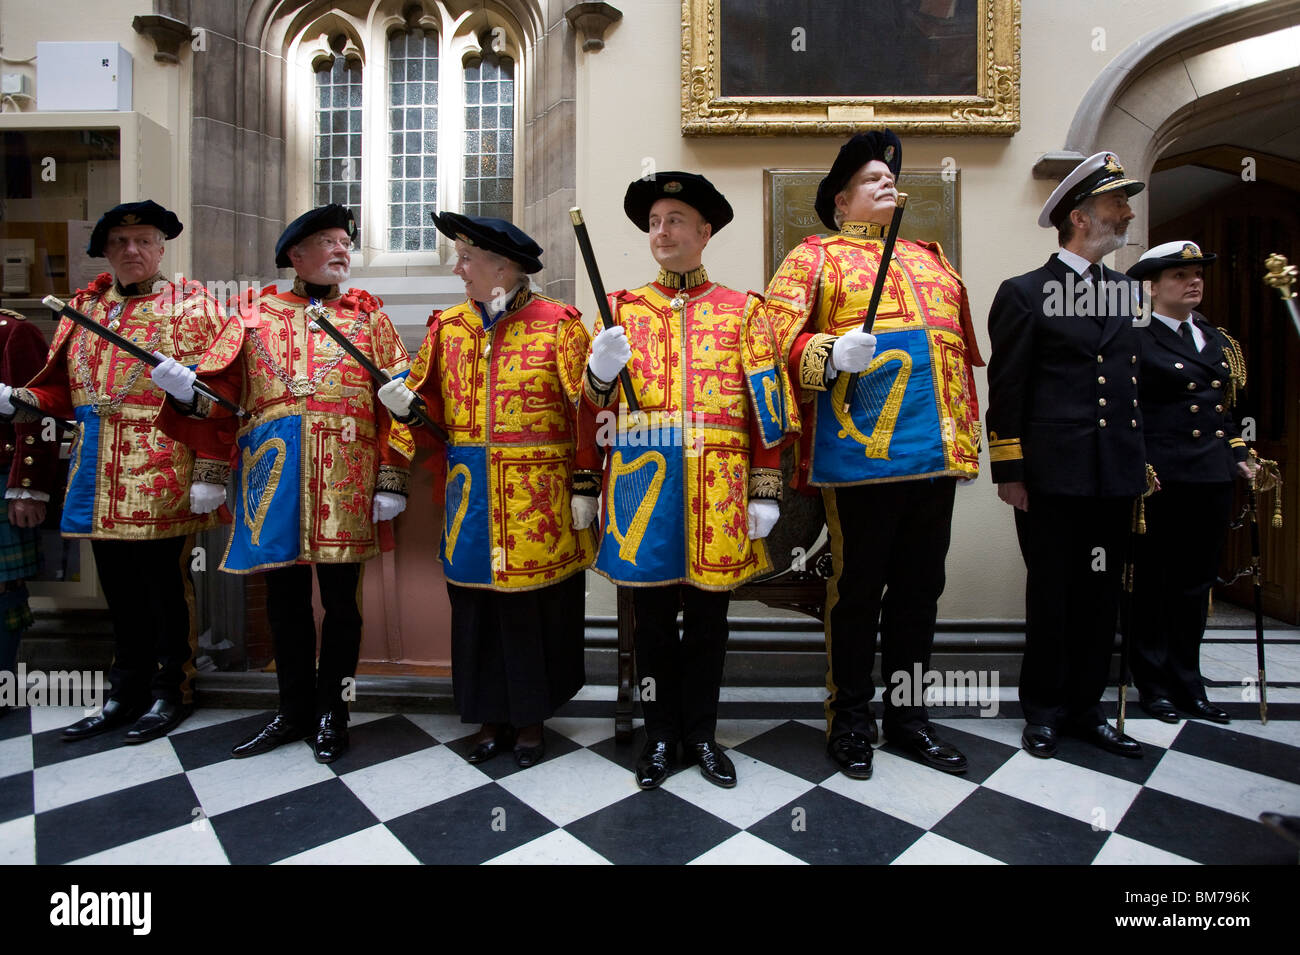 Members of the official procession line up during The General Assembly of the Church of Scotland 2010. - Stock Image